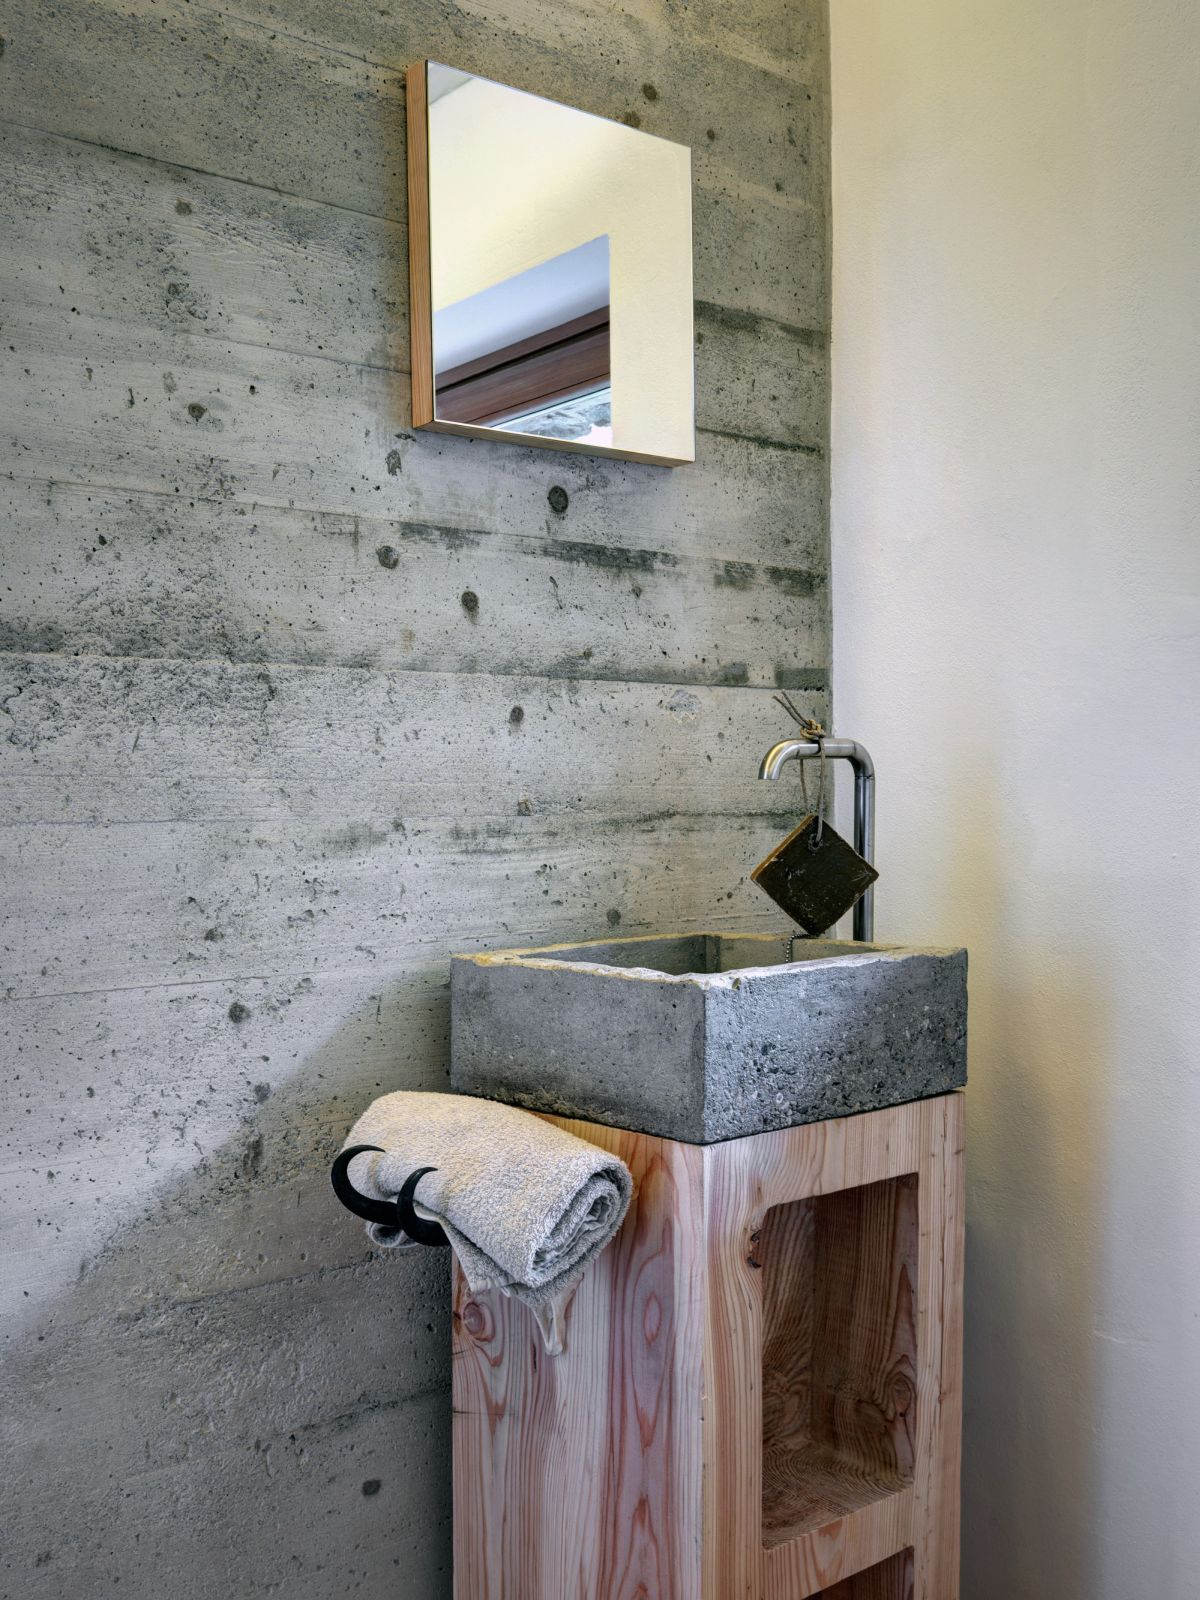 Casa Vi concrete bathroom wall and sink with wood accents